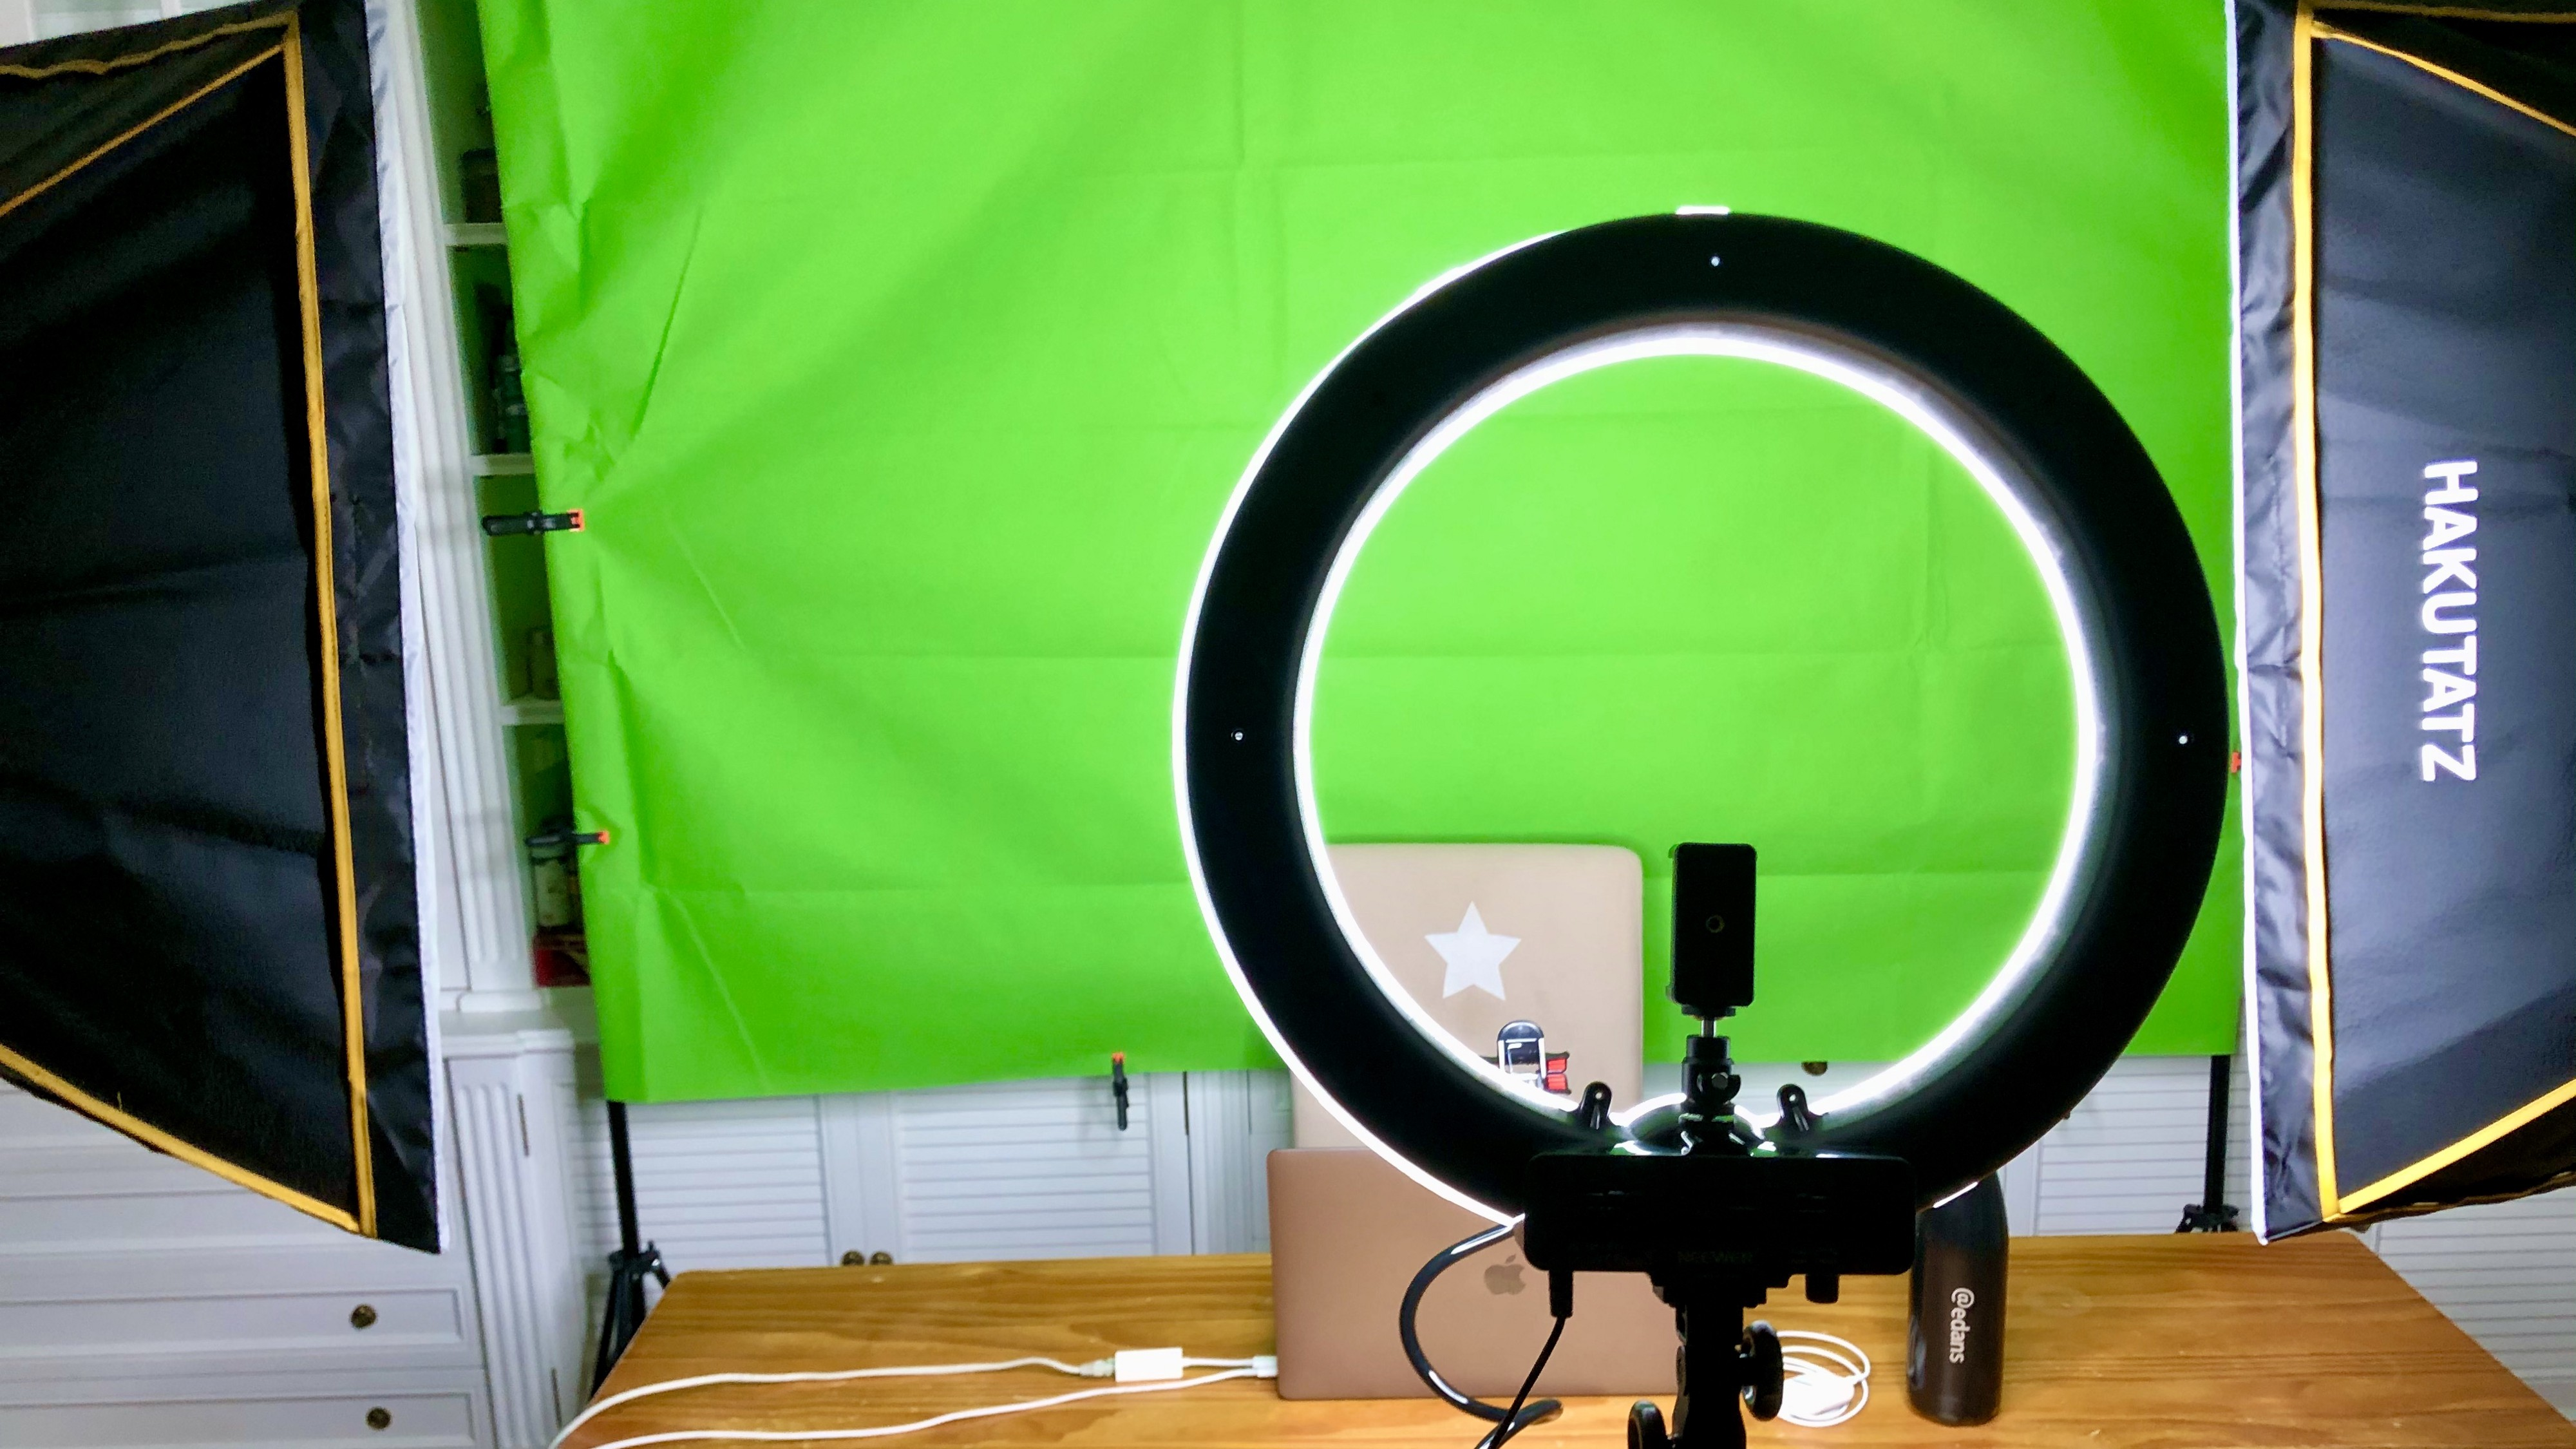 My setup at home for videoconferences, with a green screen